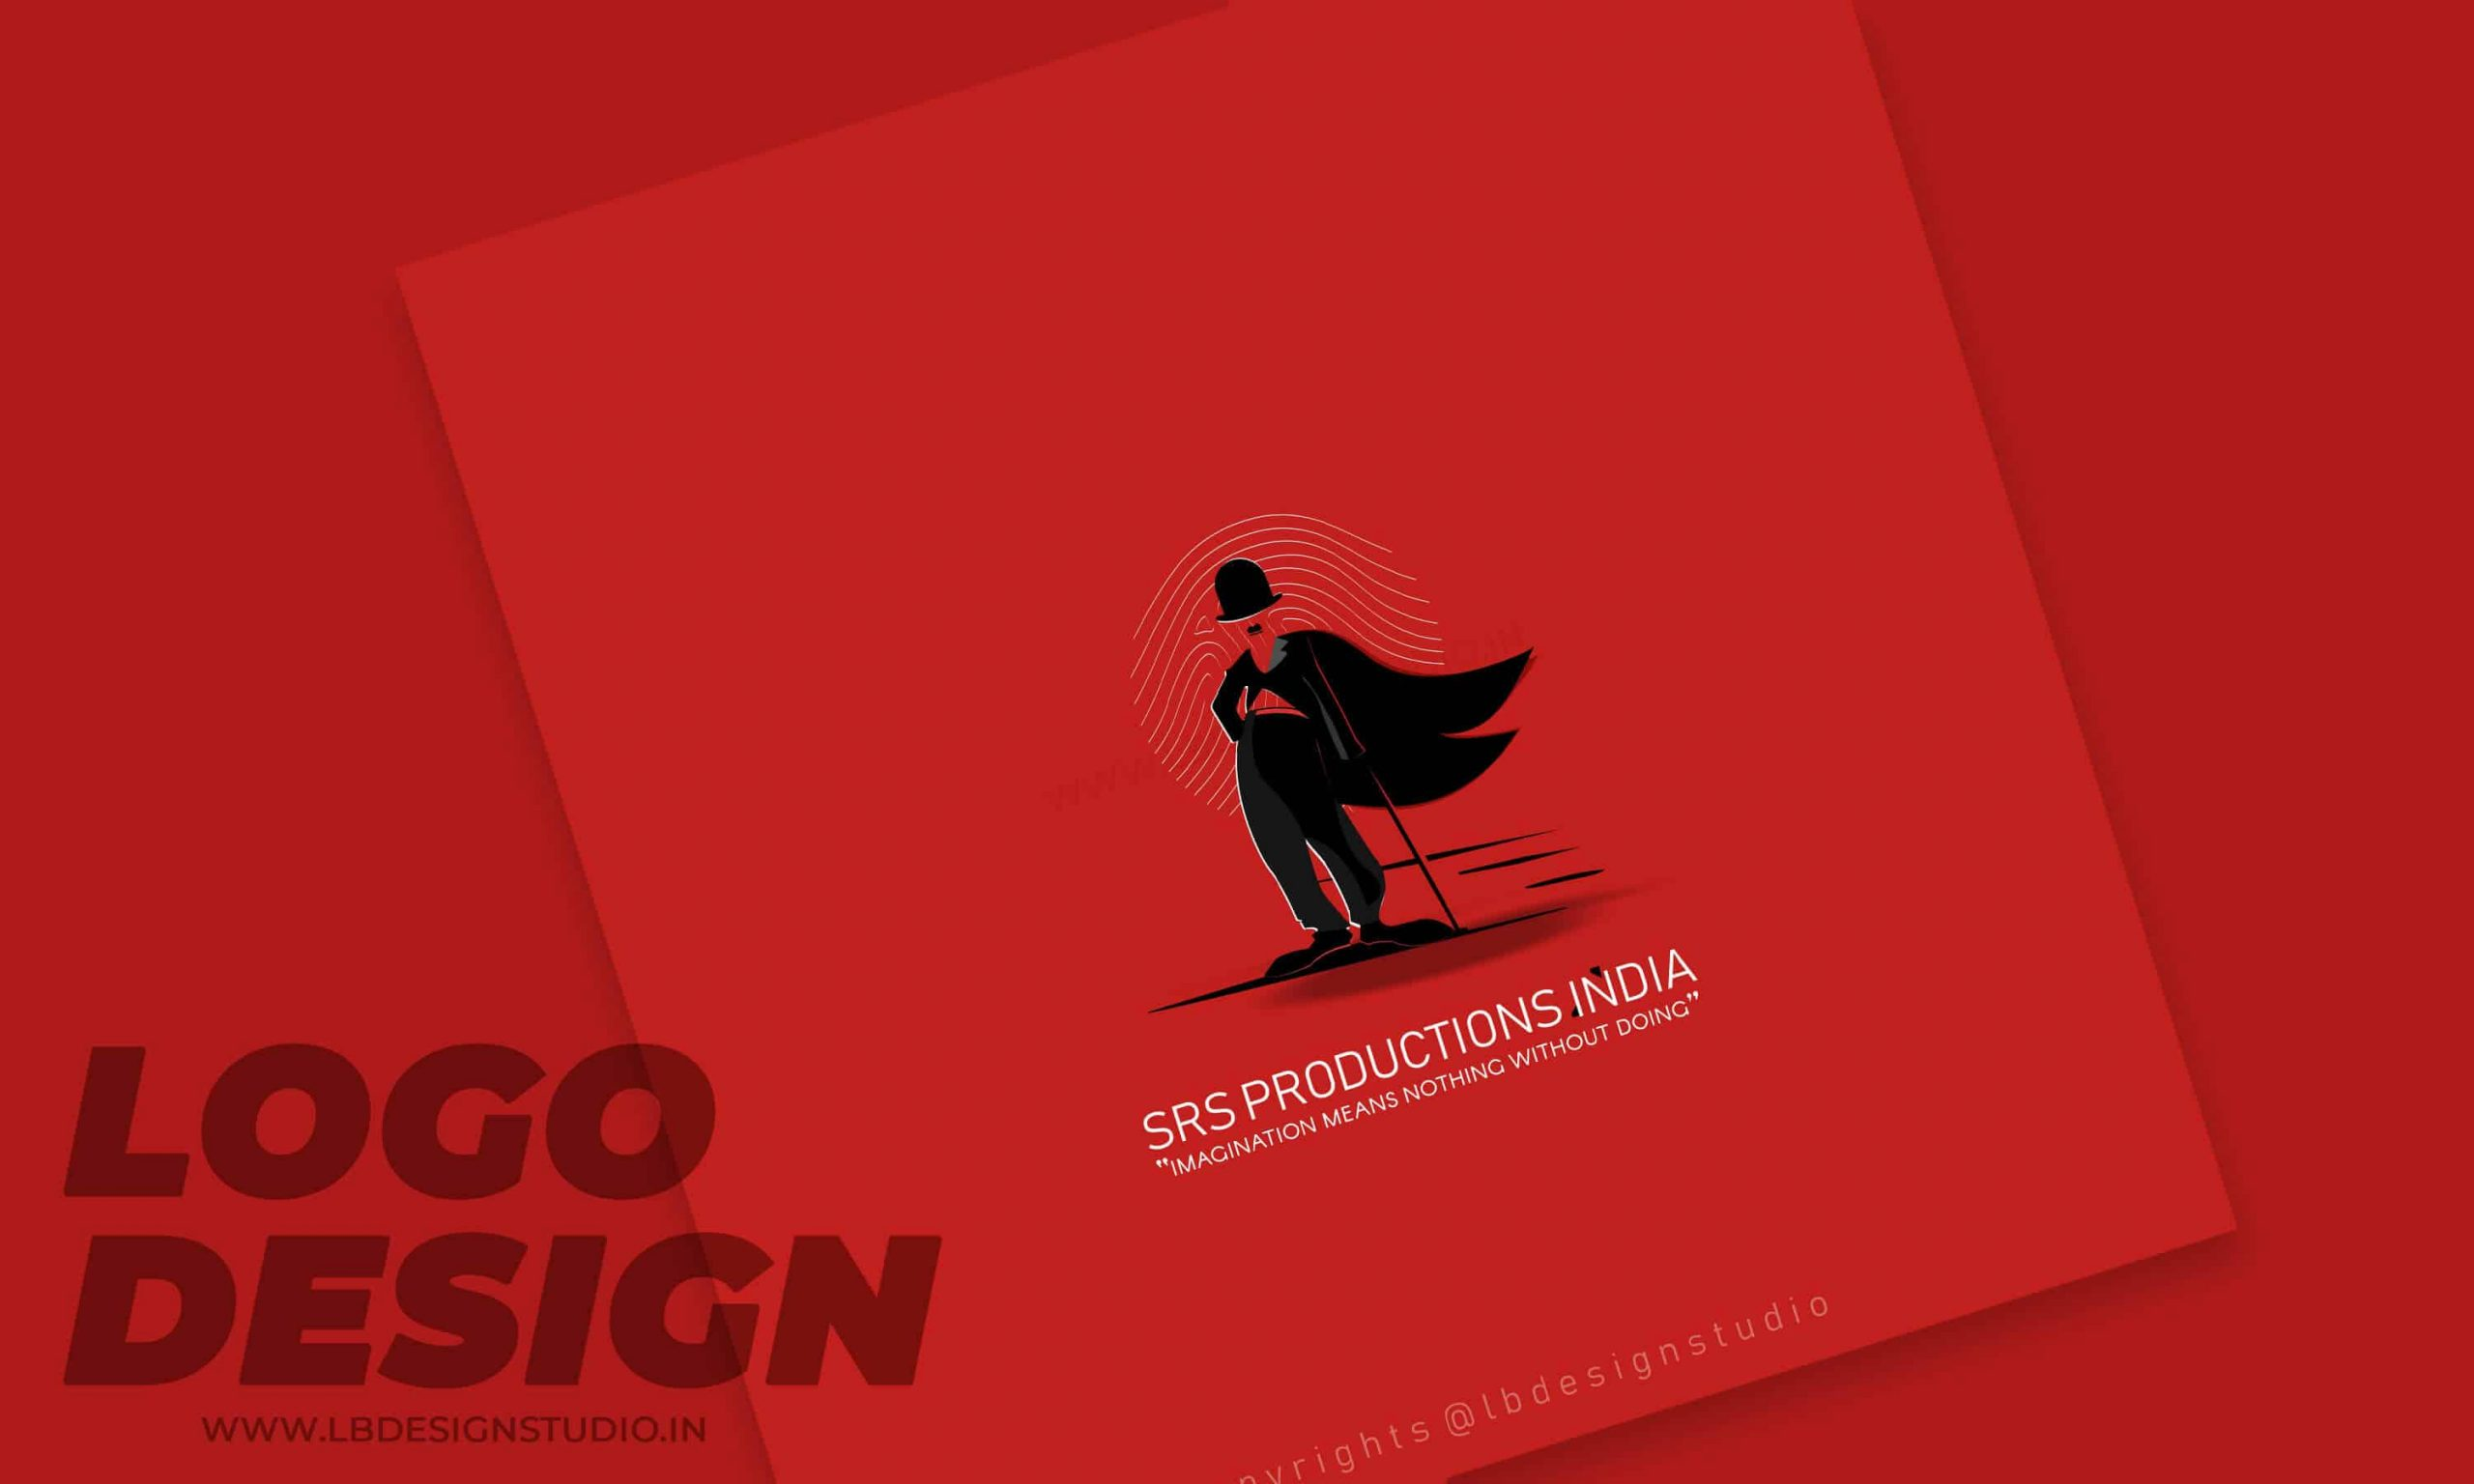 logo design chennai,logo design company chennai,logo design in chennai, srs productions logo, super hero logo design, charlie logo design